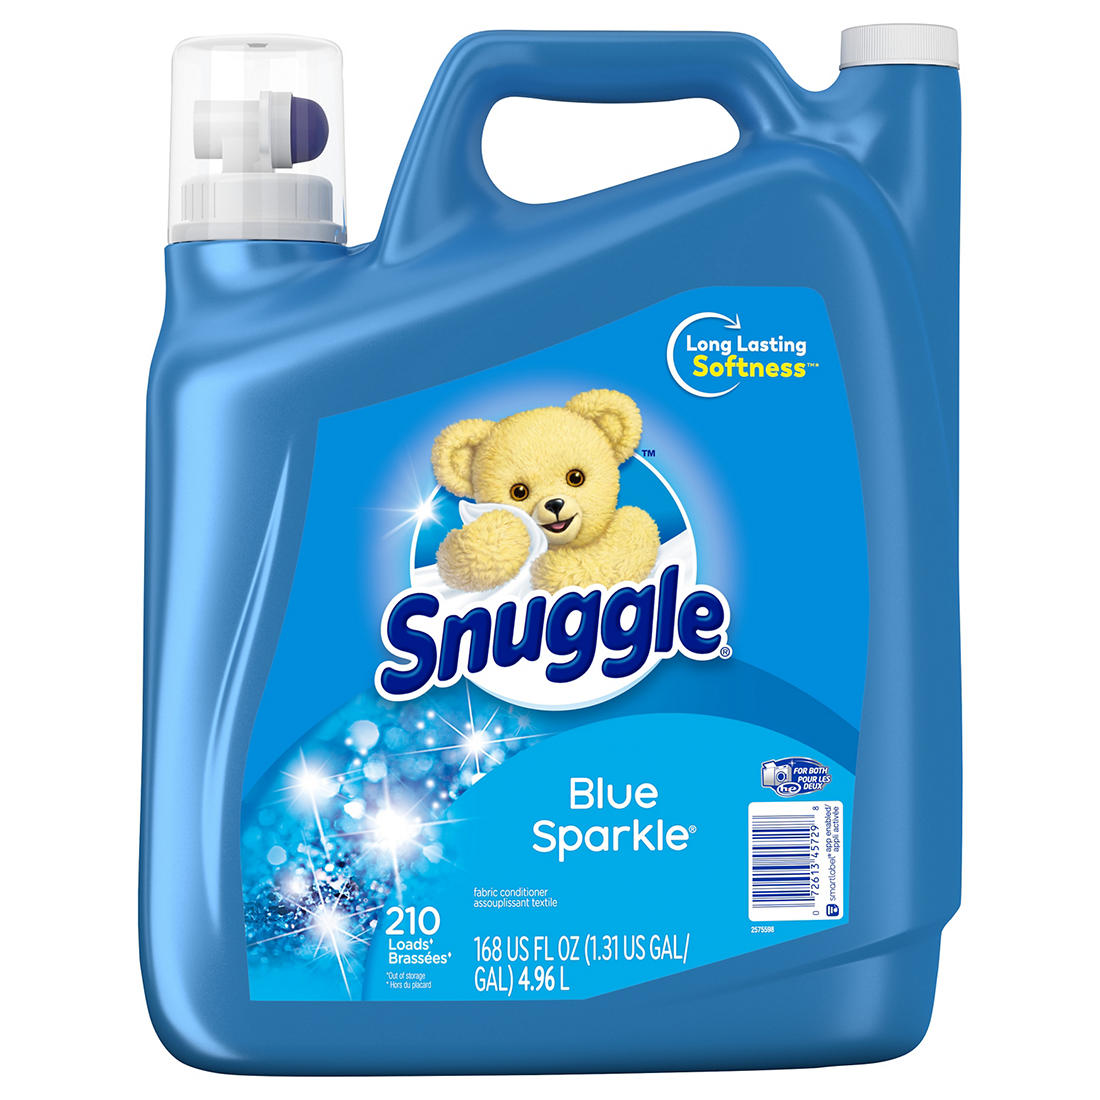 image relating to Snuggle Coupons Printable identify Snuggle Extremely Blue Sparkle Liquid Cloth Softer With Clean Launch, 168 fl. oz.